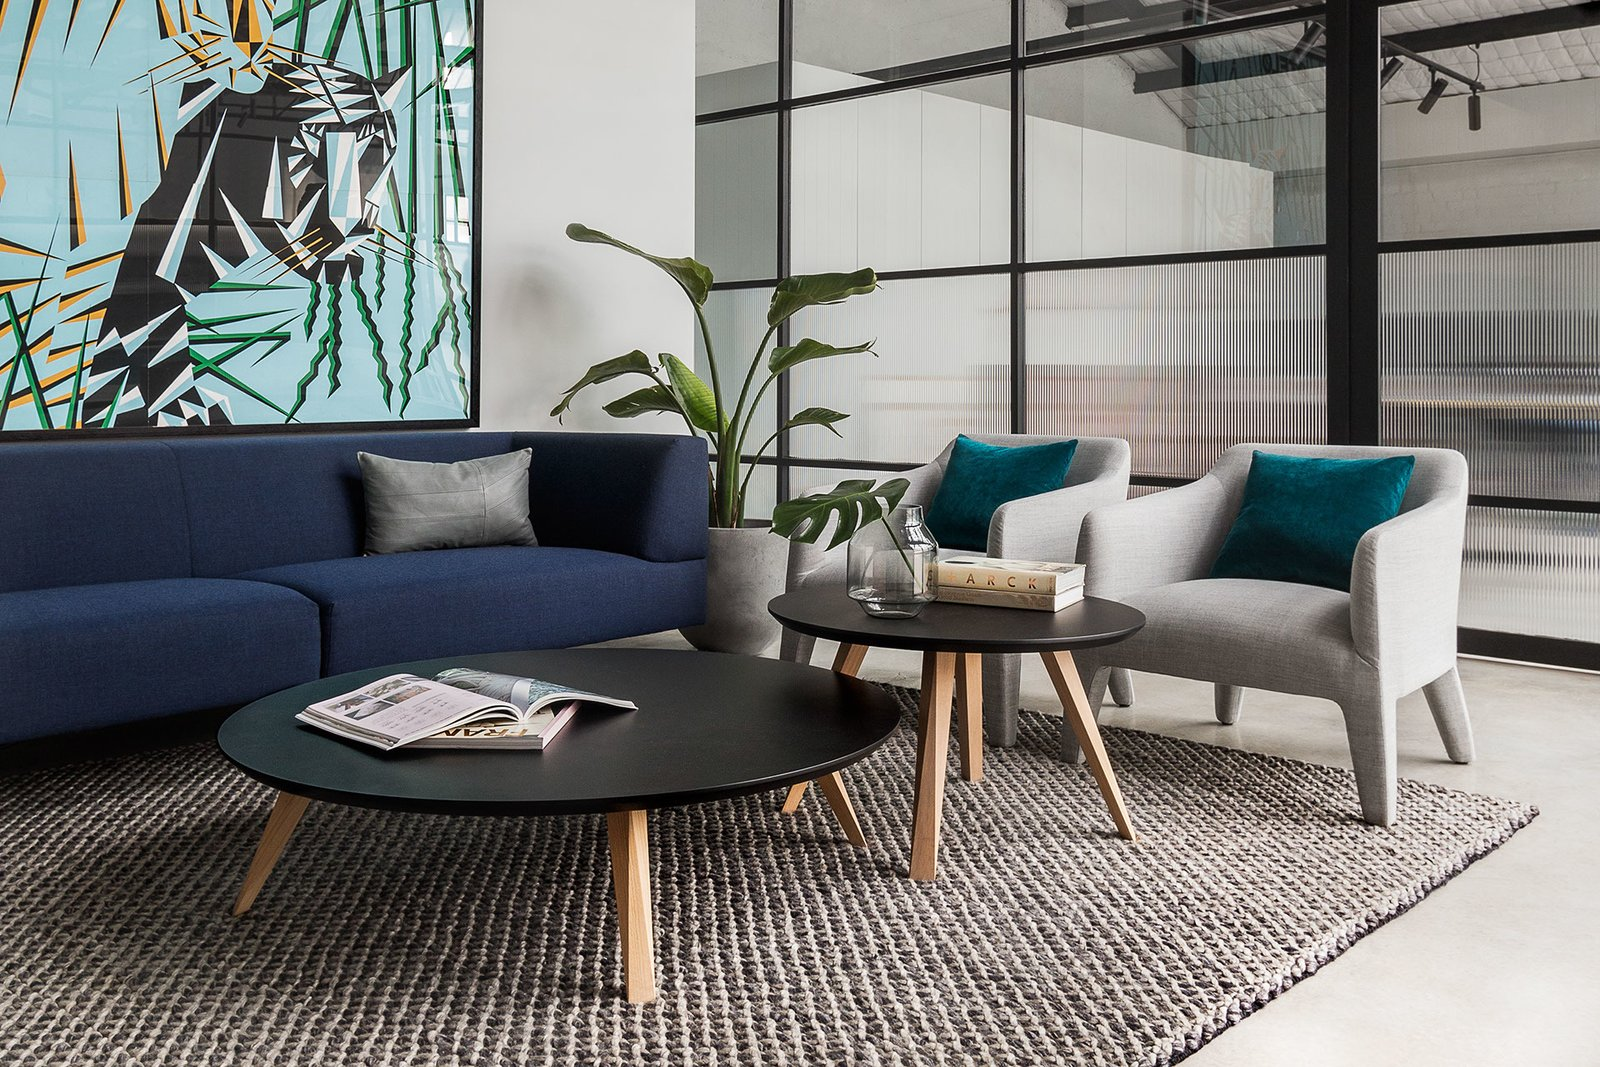 Photo 7 of 14 in An Art Deco Warehouse in Melbourne Is Converted Into a Shared Office Space